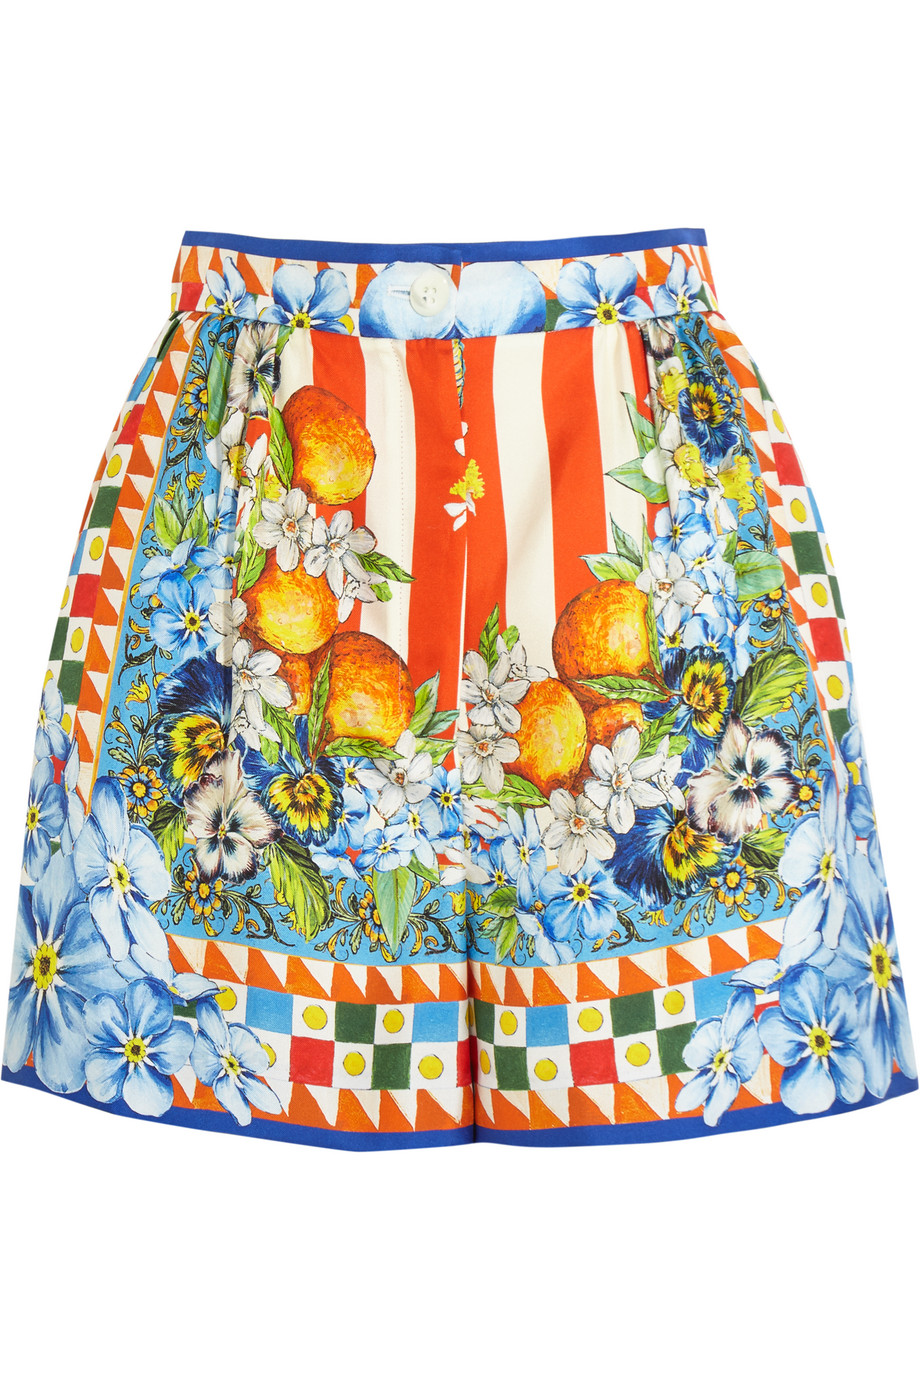 Dolce & Gabbana Printed Silk-Satin Shorts, Orange/Blue, Women's, Size: 38